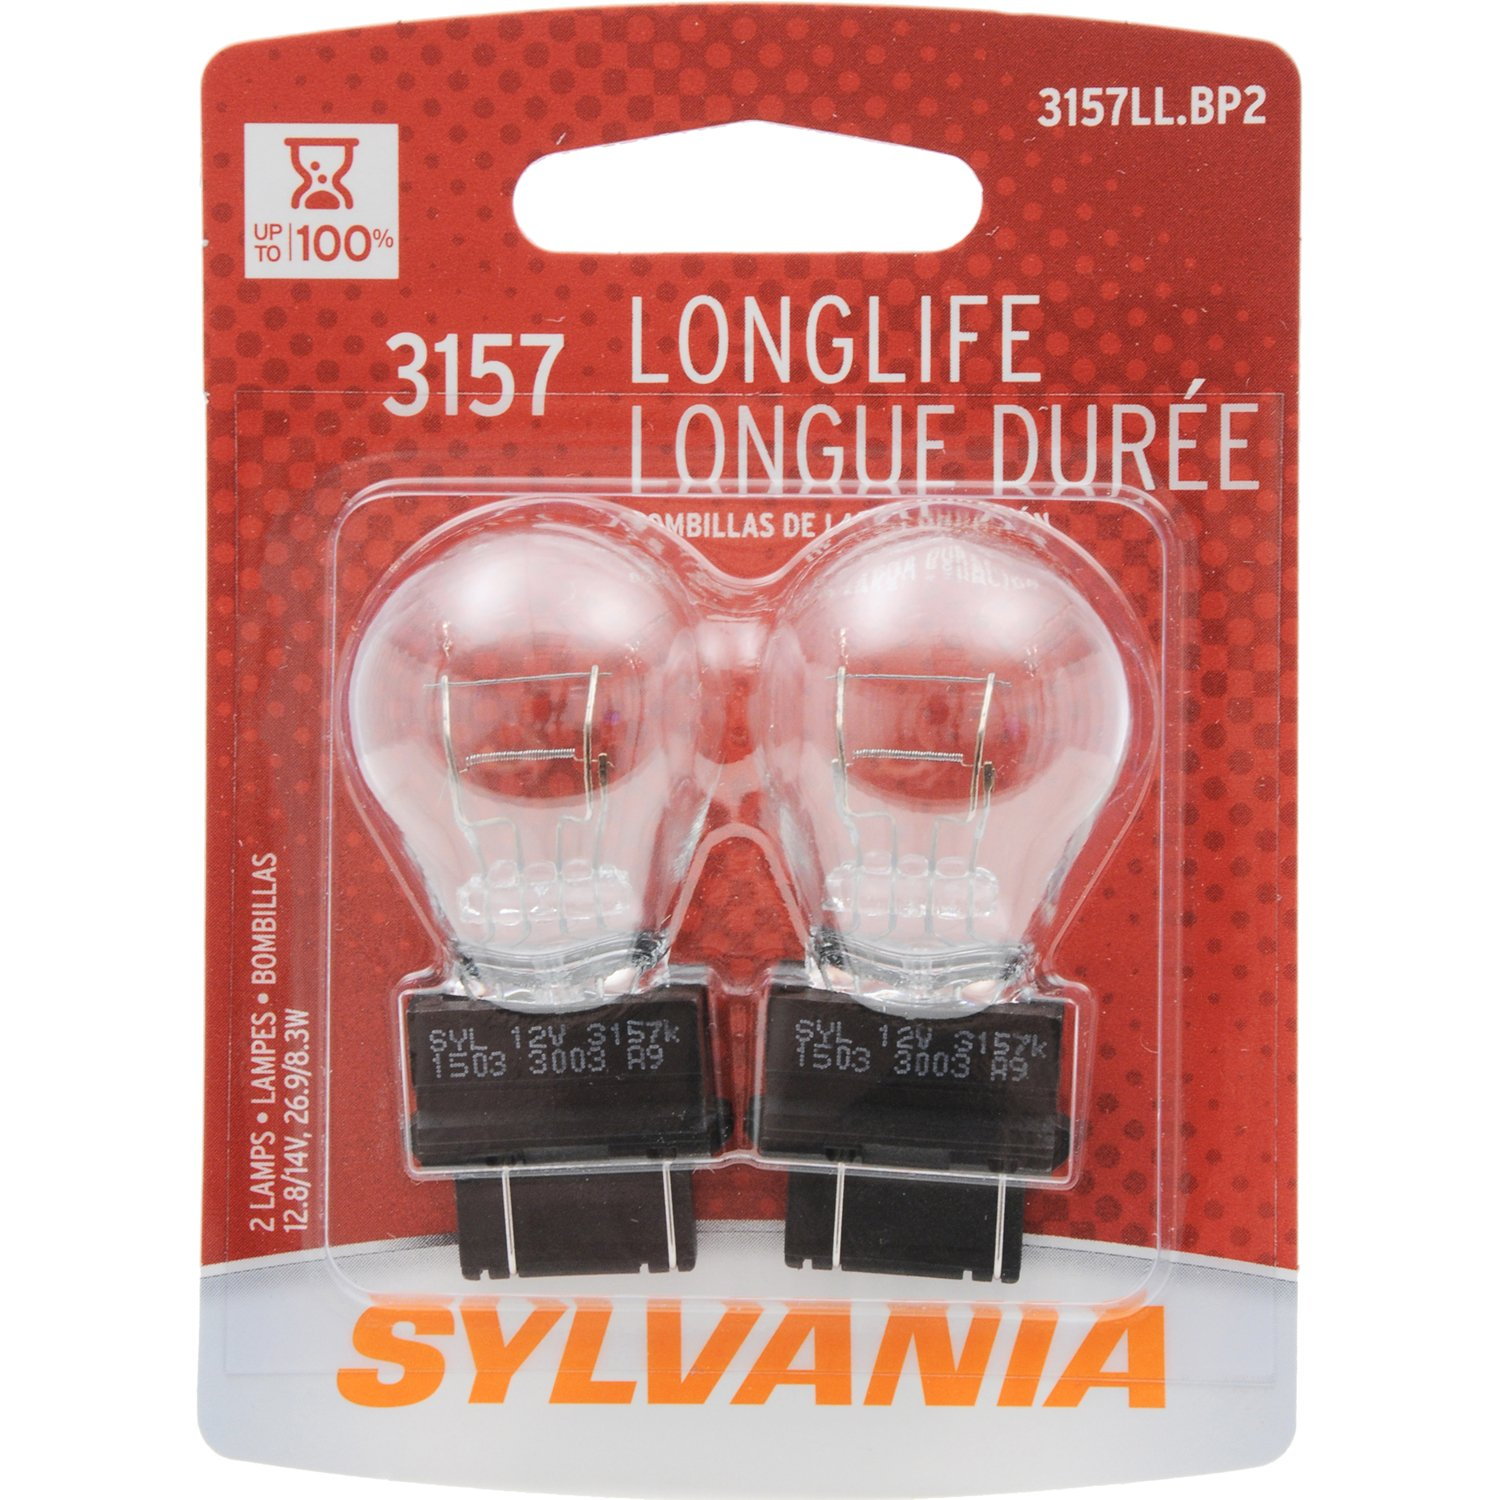 Sylvania 3157 Long Life Miniature Bulb Contains 2 2012 Ford Focus Light Switch Bulbs Automotive